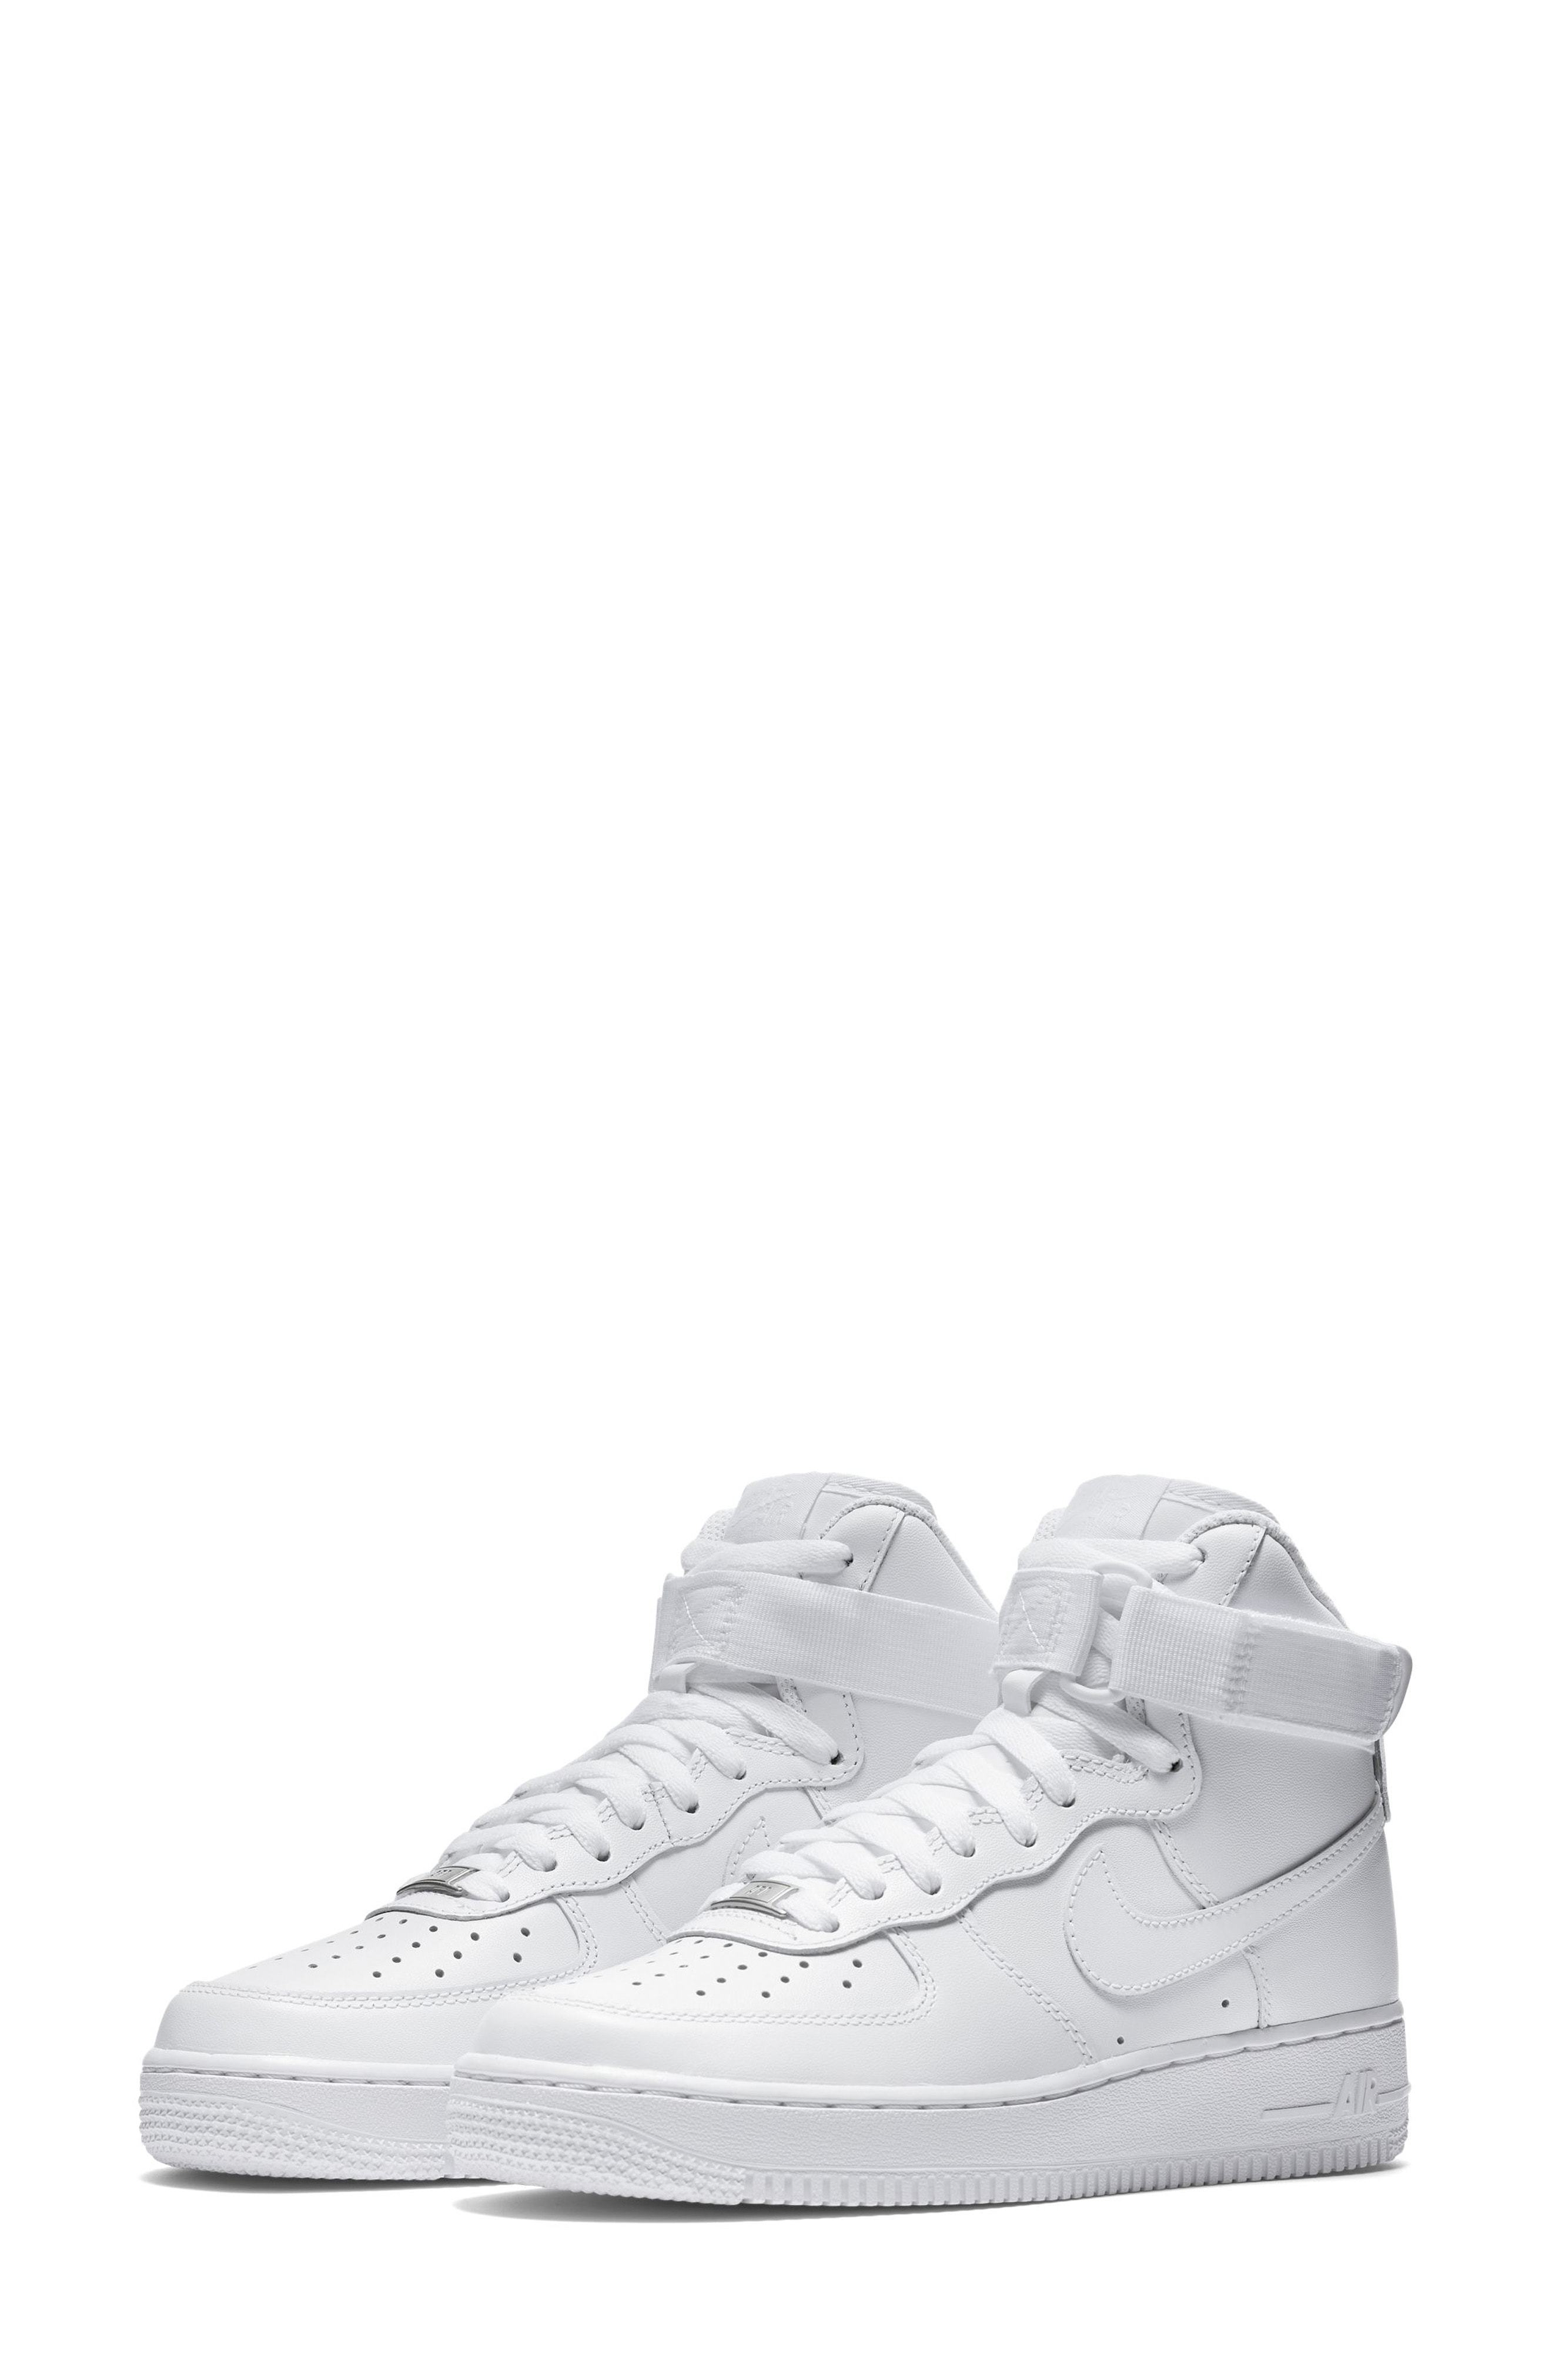 finest selection 314f2 12f28 ... White Leather High Top Sneakers Nike Air Force 1 High Top Sneaker